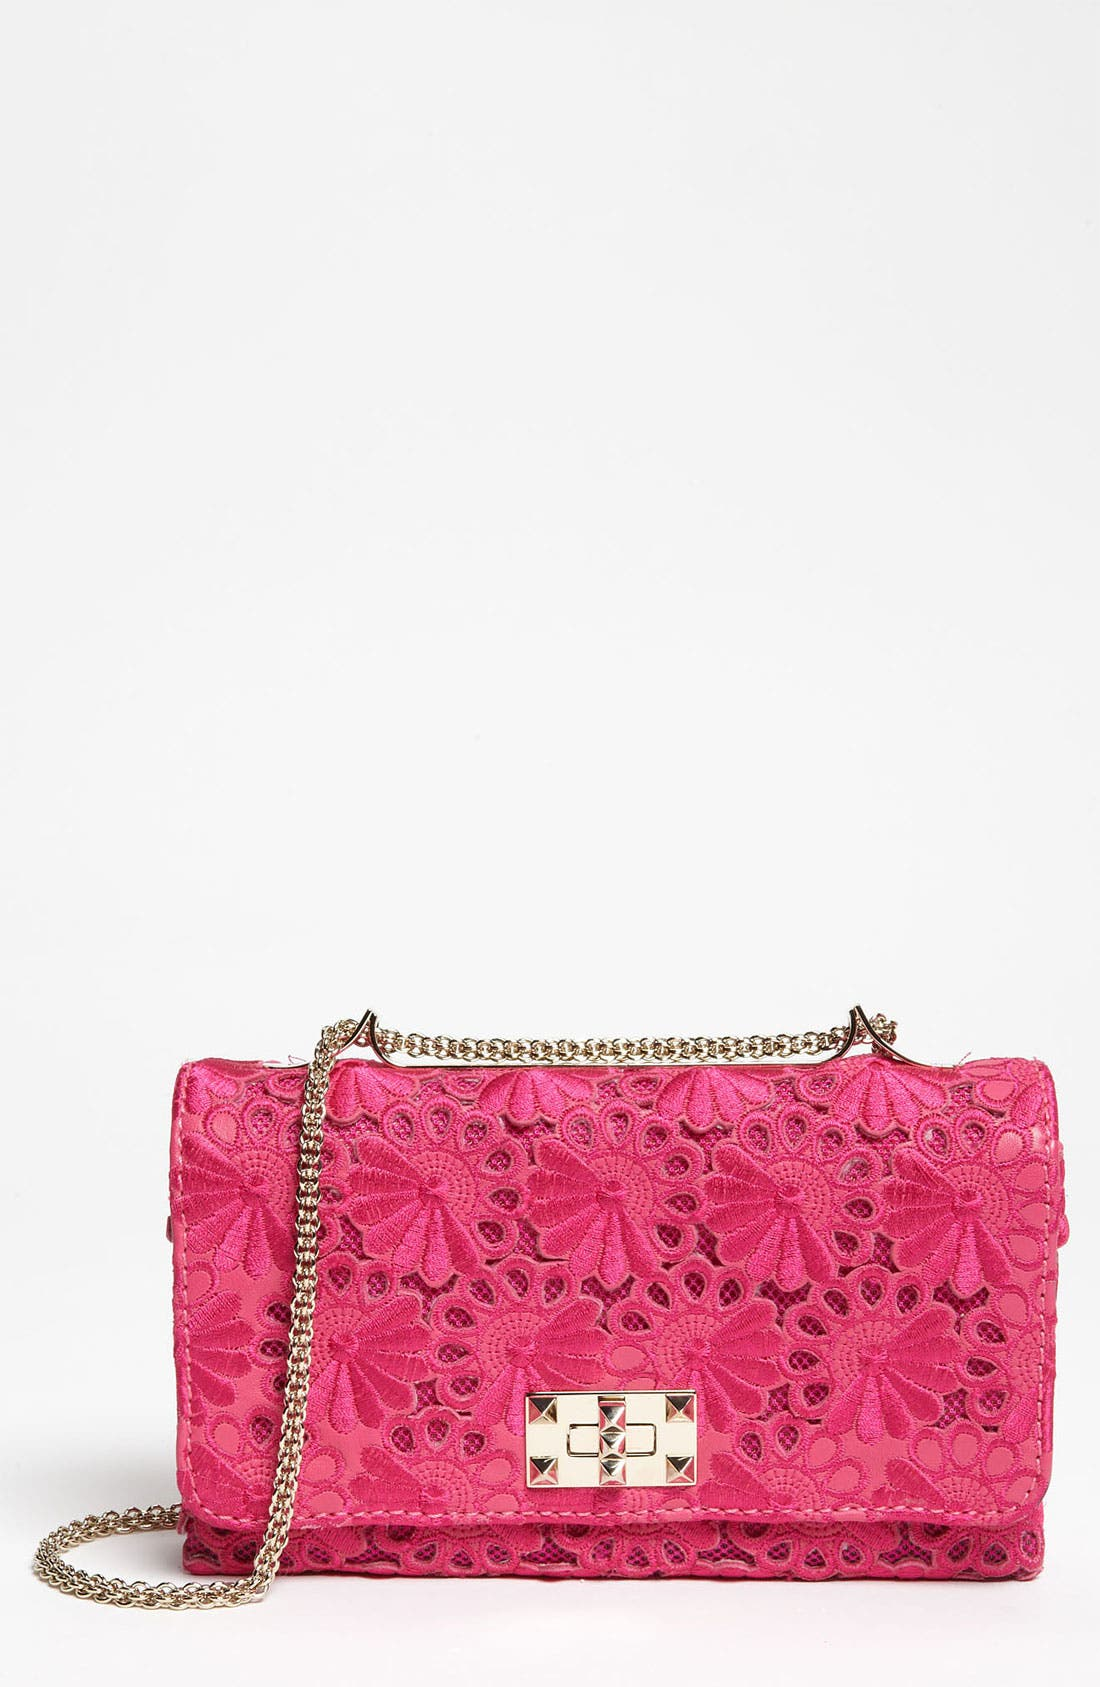 Main Image - Valentino 'Girello Flap' Lace Bag